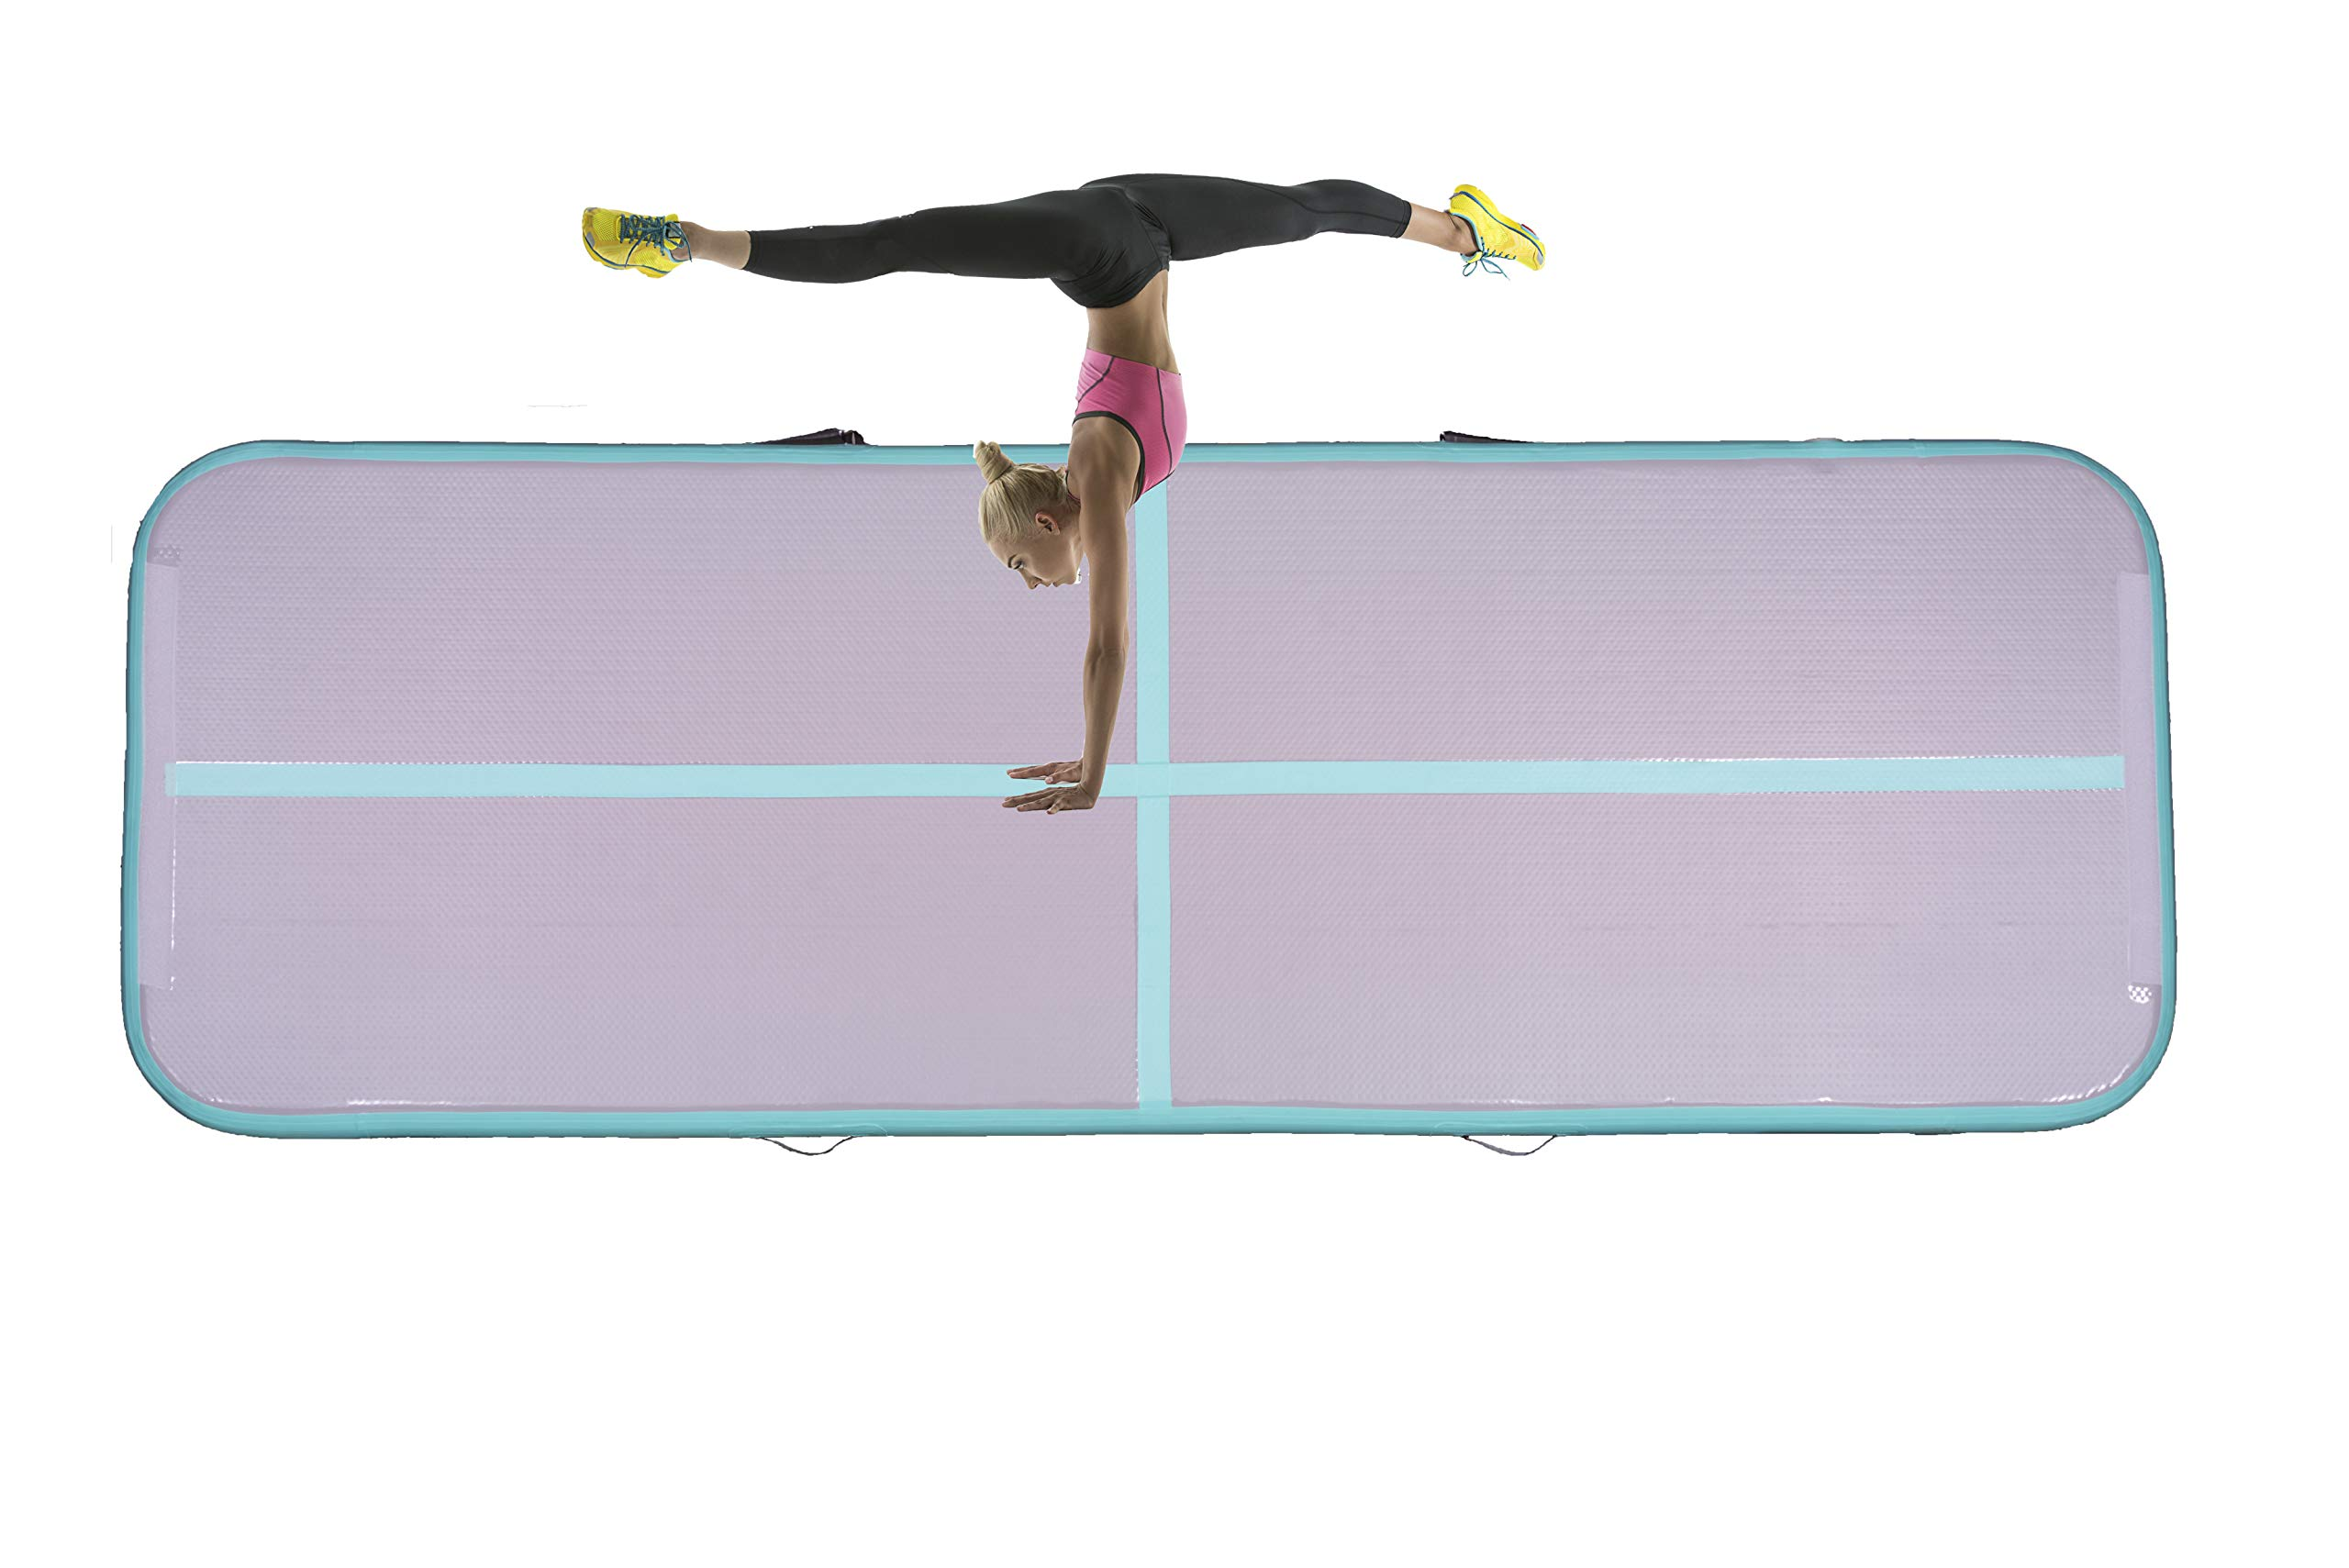 Gymeden Multi-Function extensible Airtrack Tumbling mat Kid Gymnastics mat Inflatable Gymnastics air Track air Tumble Track for Gymnastics Gym mats for Kids Taekwondo Dancing,Parkour,Yoga,Tumbling by Gymeden (Image #3)